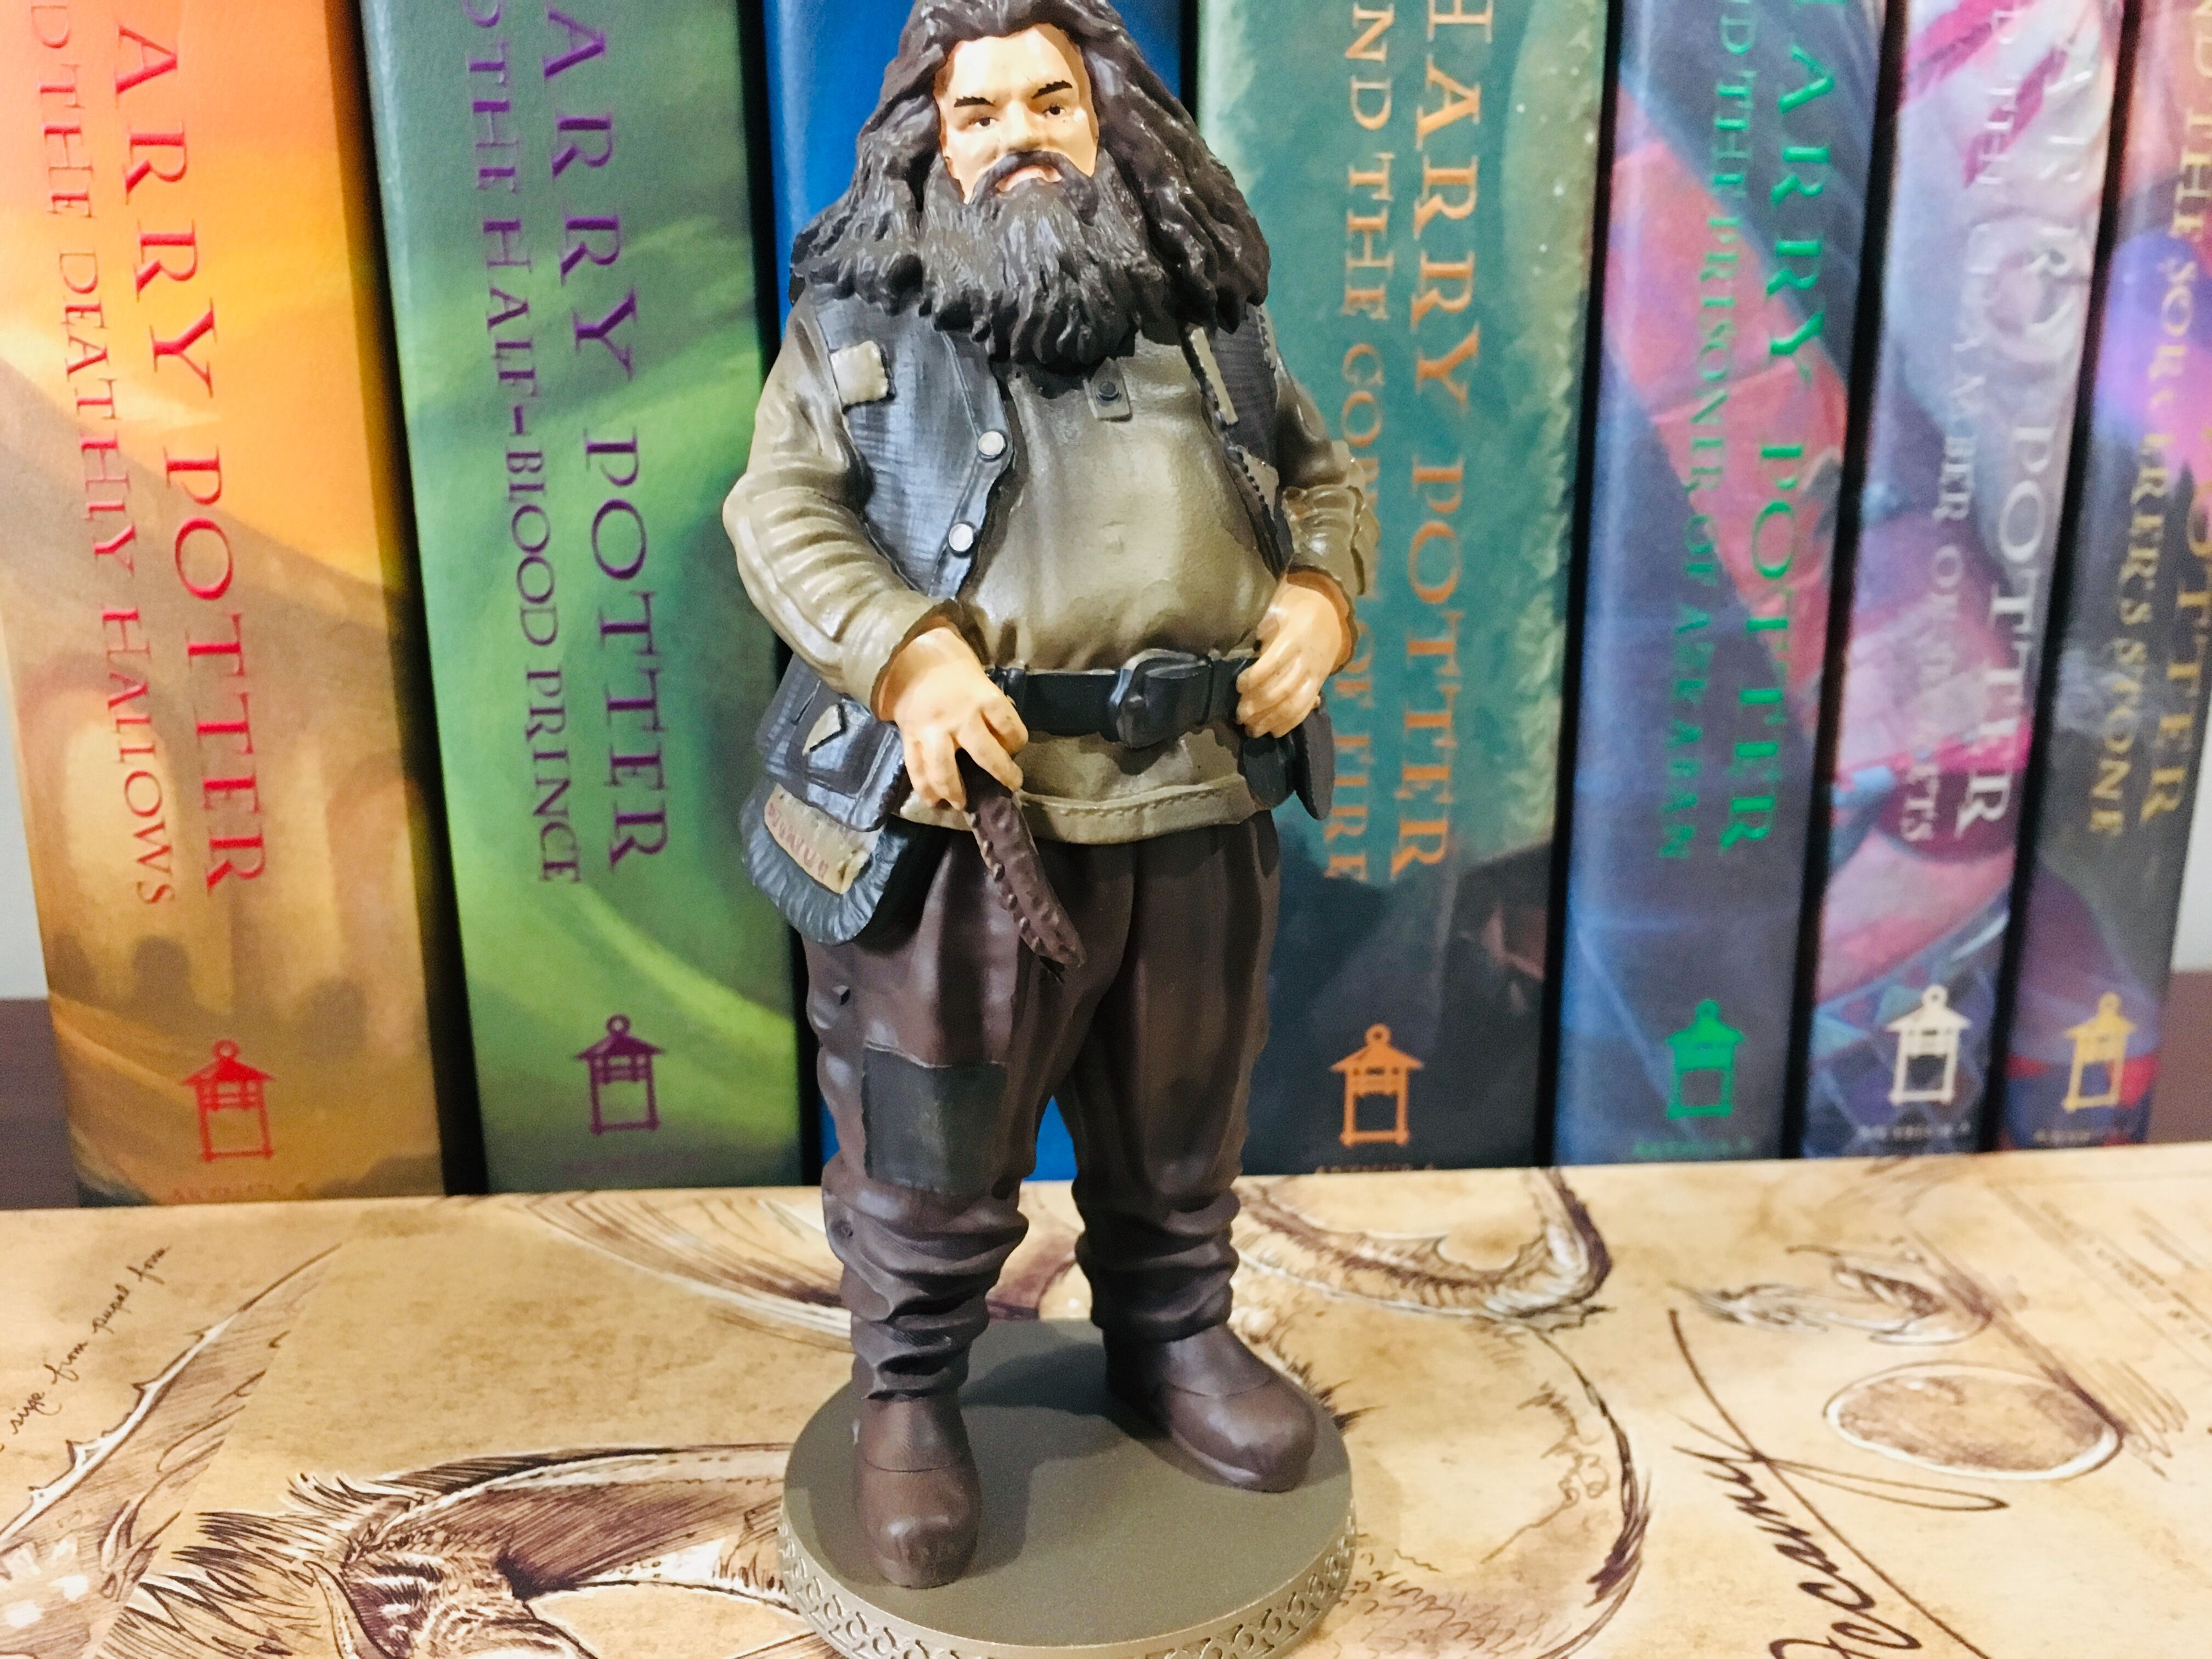 The Eaglemoss Hagrid figurine is beautiful and truly captures even the smallest details in Hagrid's customary outfit.